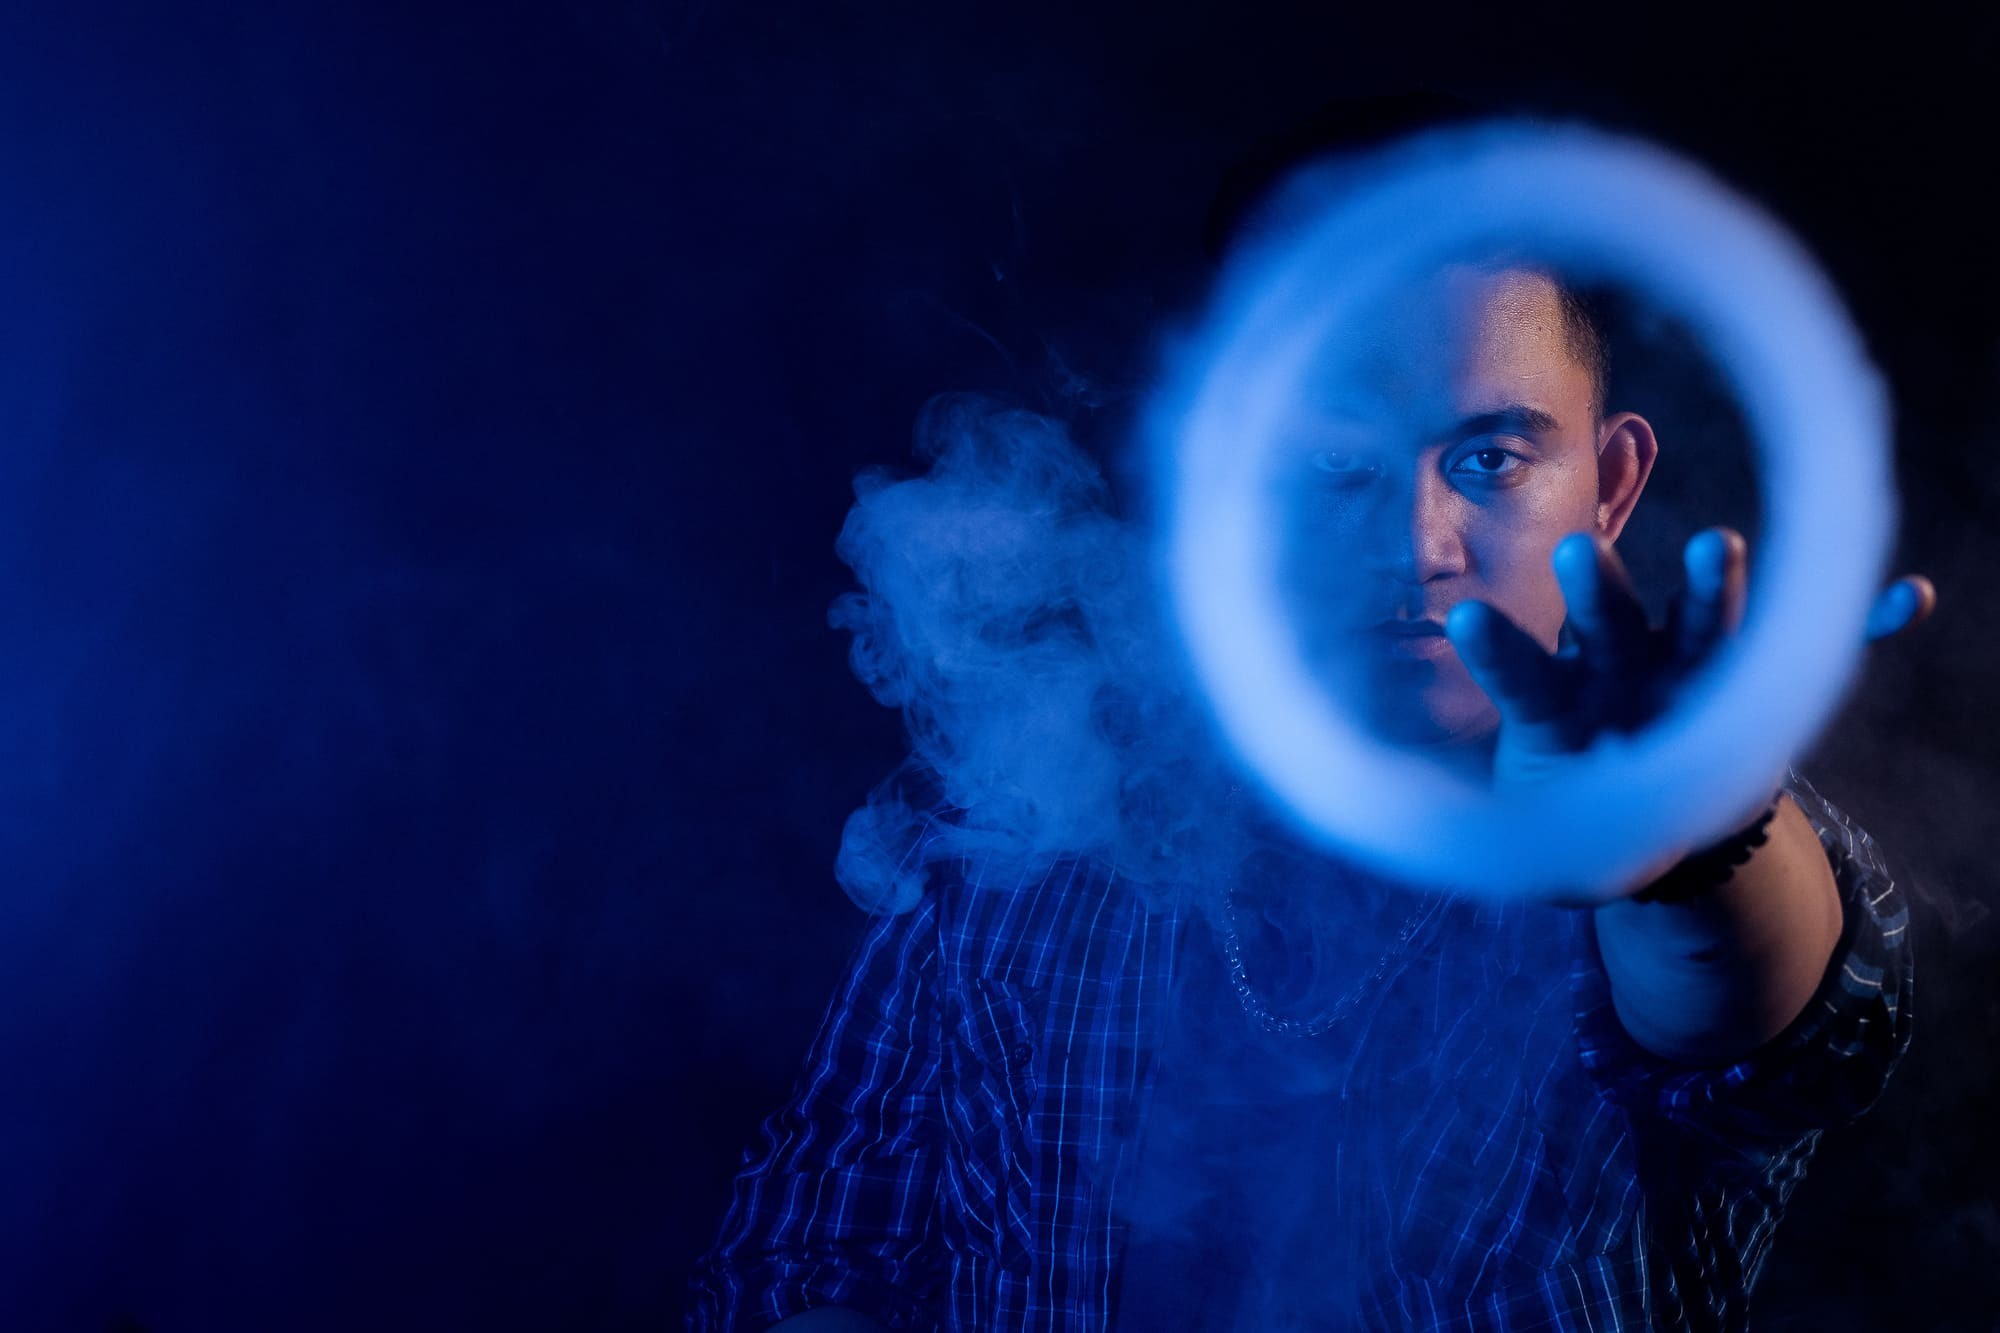 Tricked Out: How to Do Vape Tricks Like a Boss